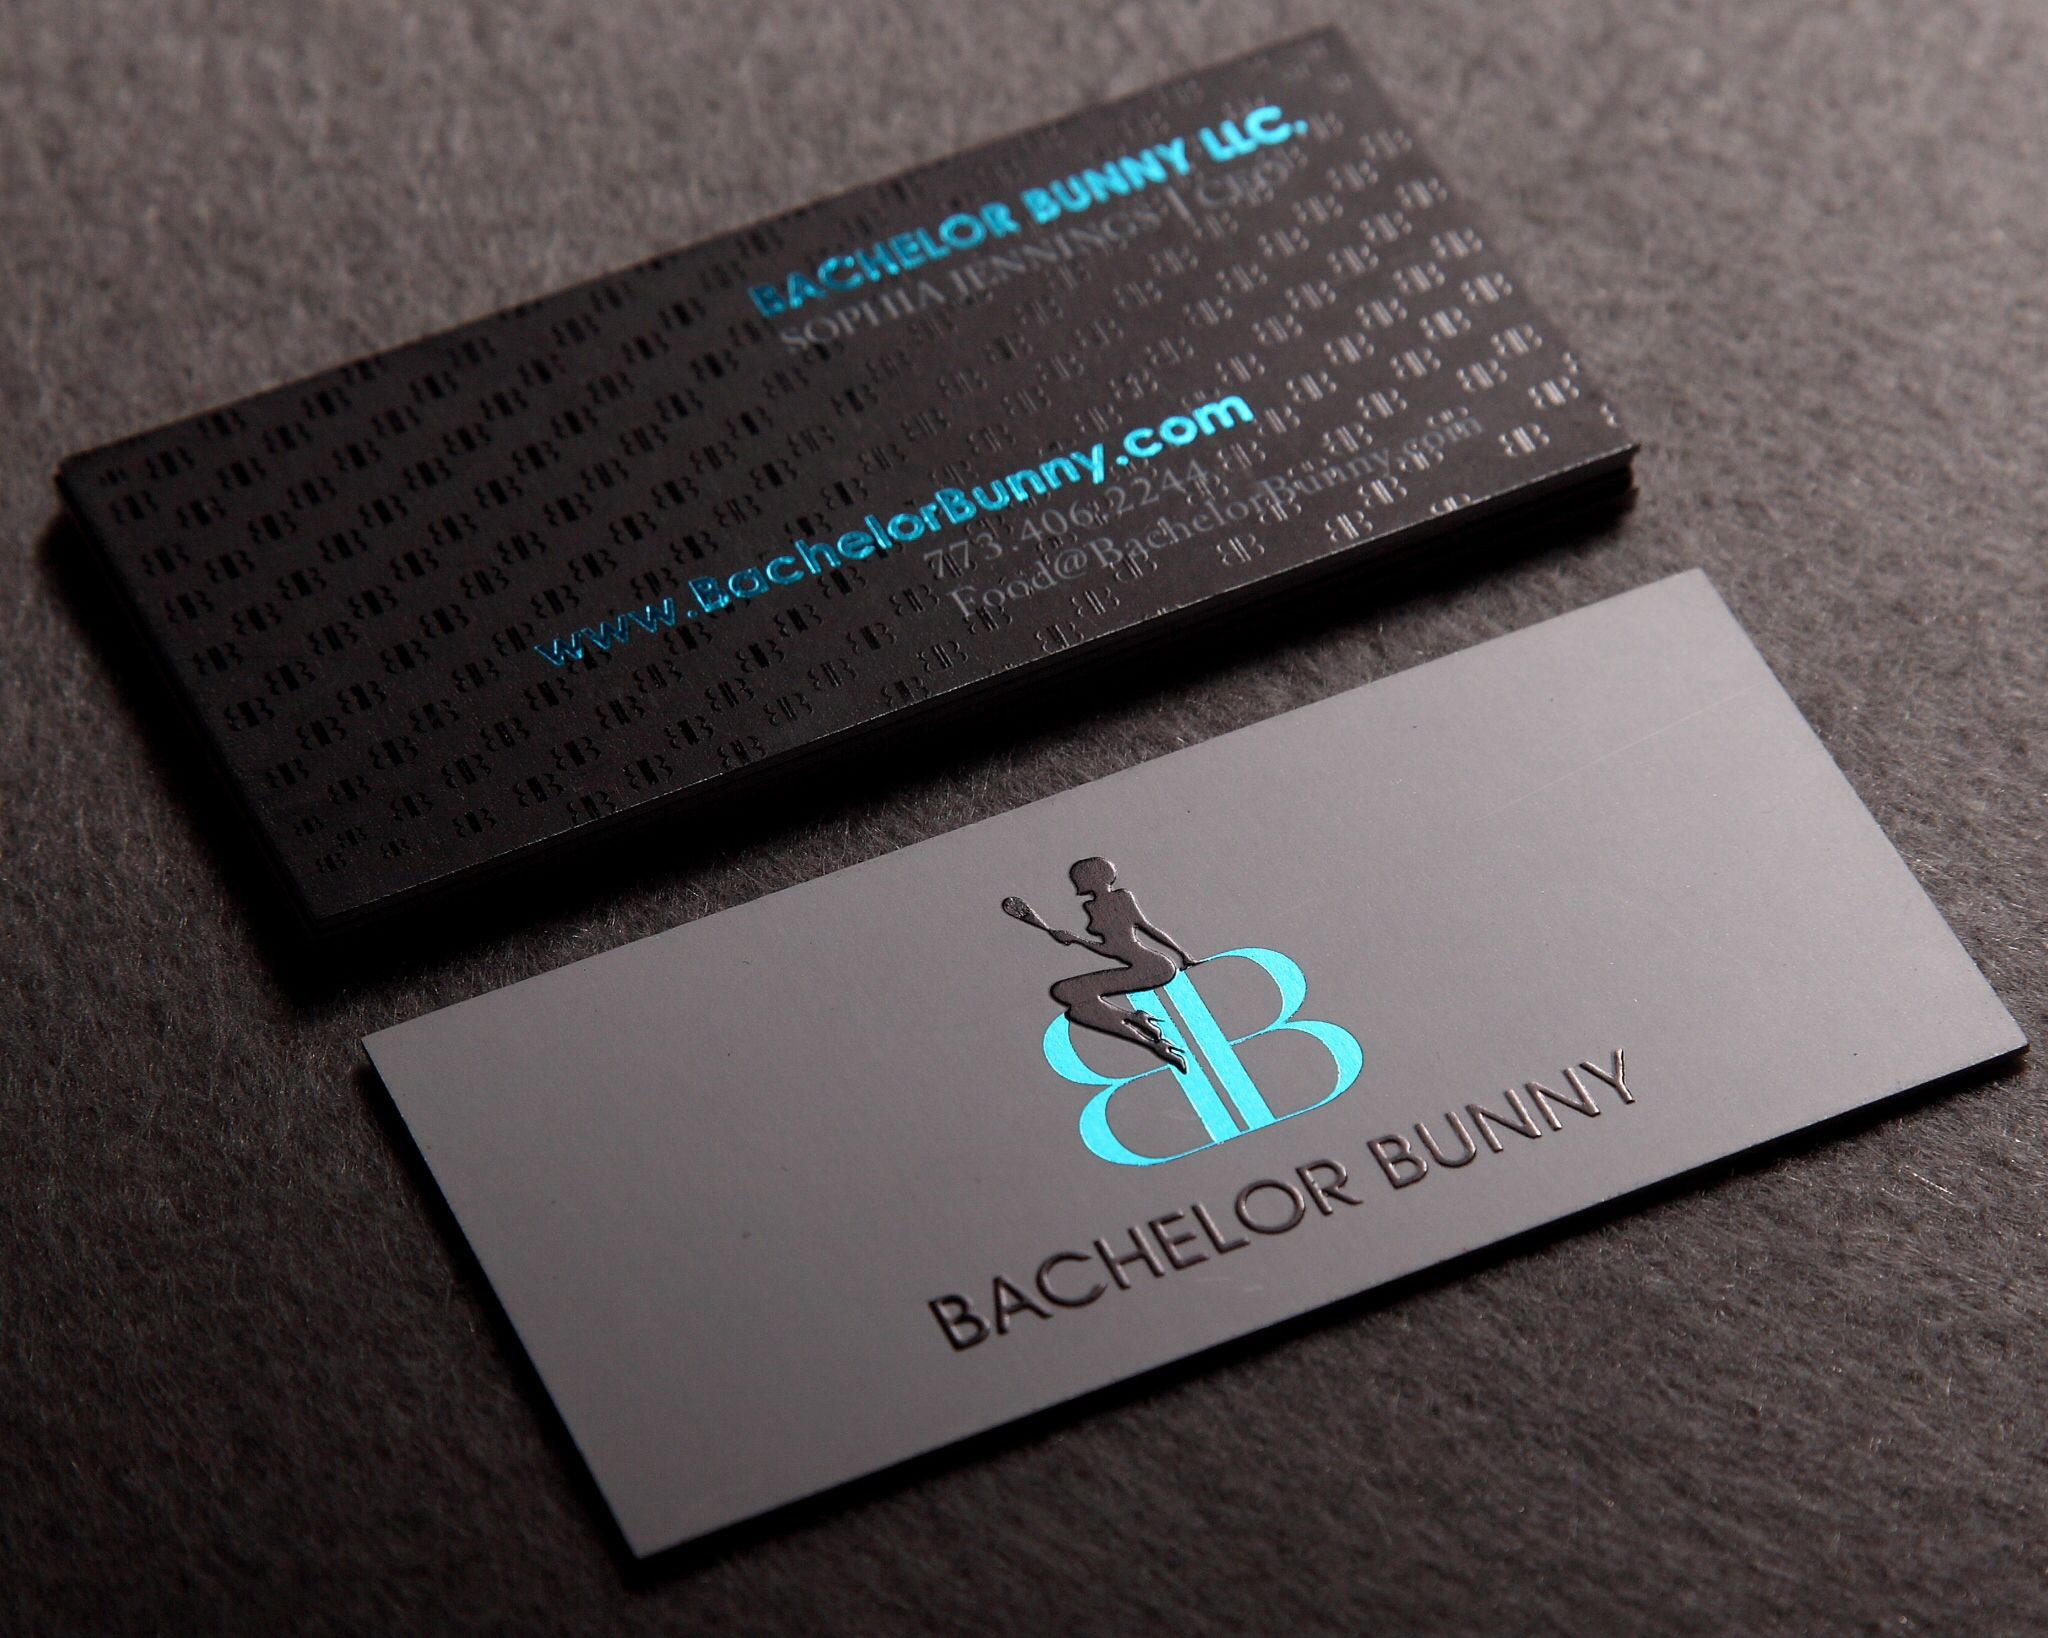 20 Best Unique Business Cards Images On Pinterest Unique Business